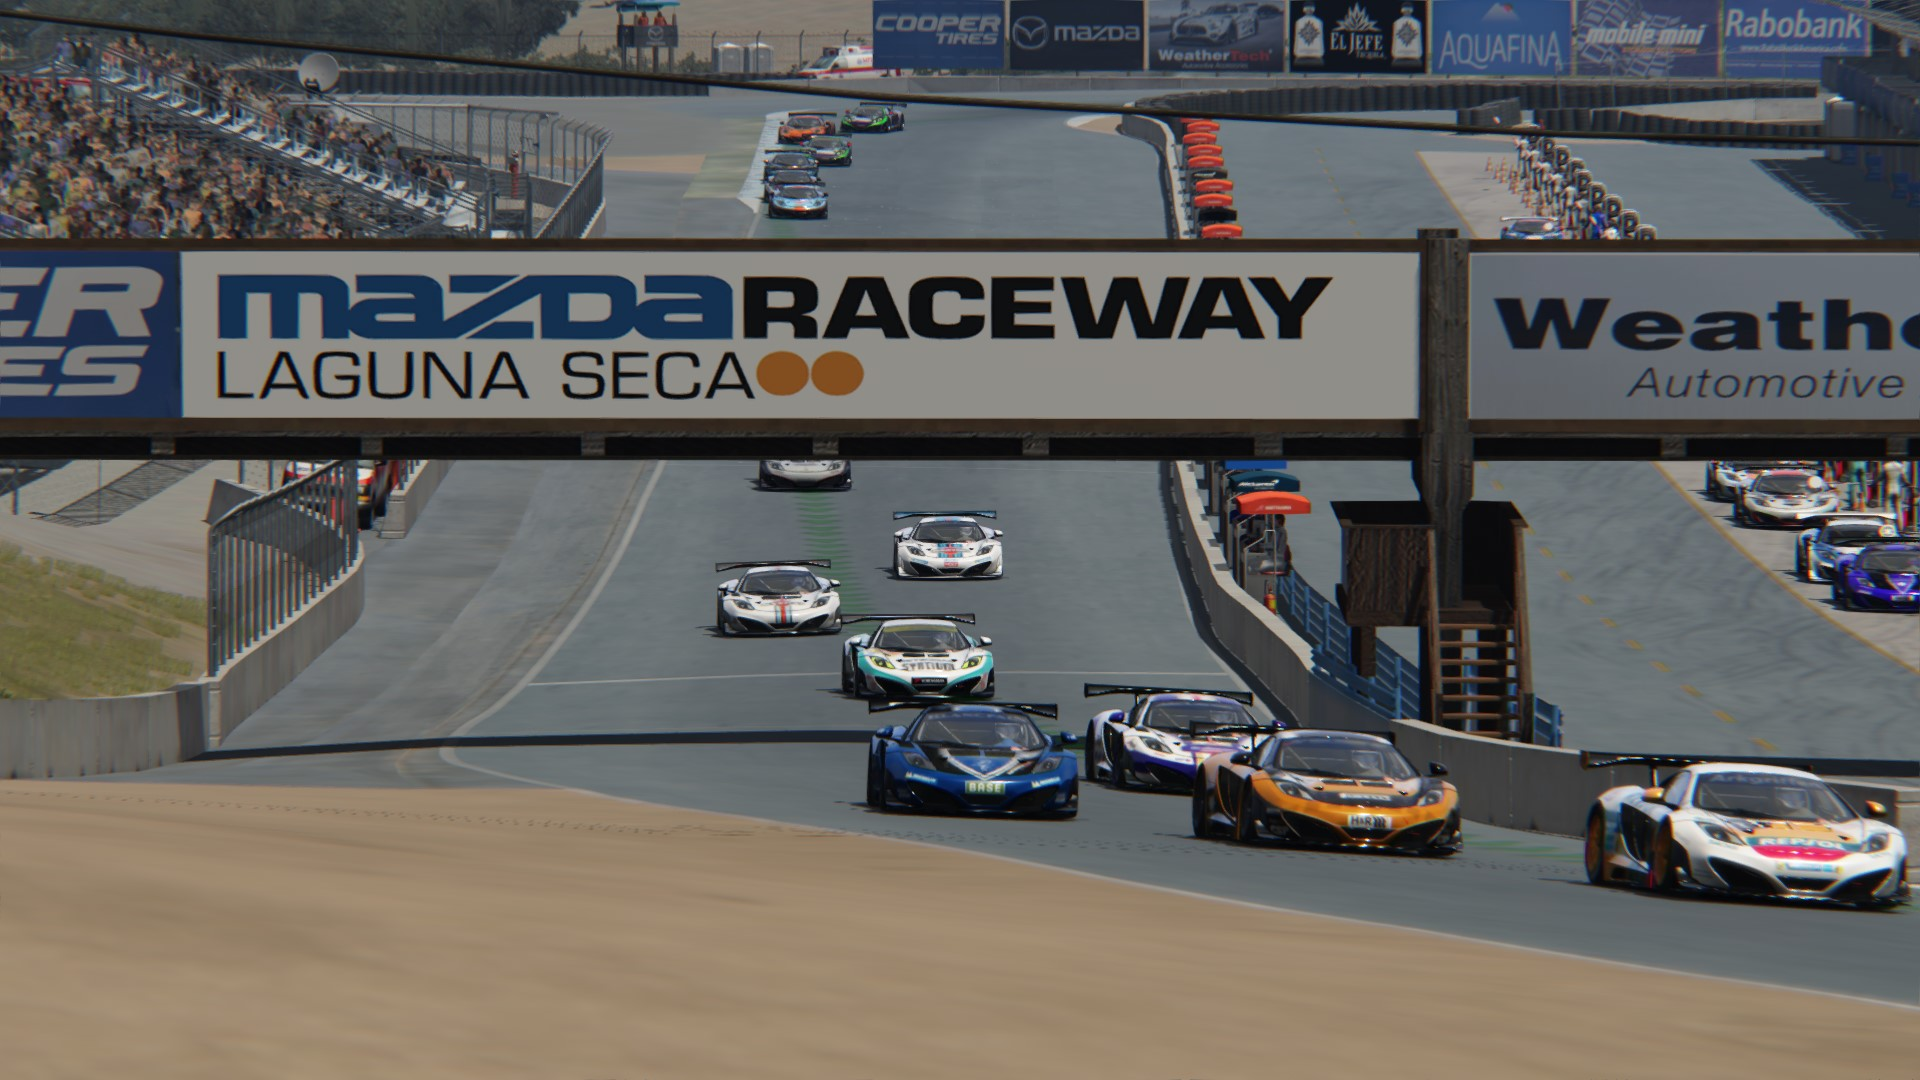 Screenshot_mclaren_mp412c_gt3_ks_laguna_seca_23-12-117-15-17-10.jpg